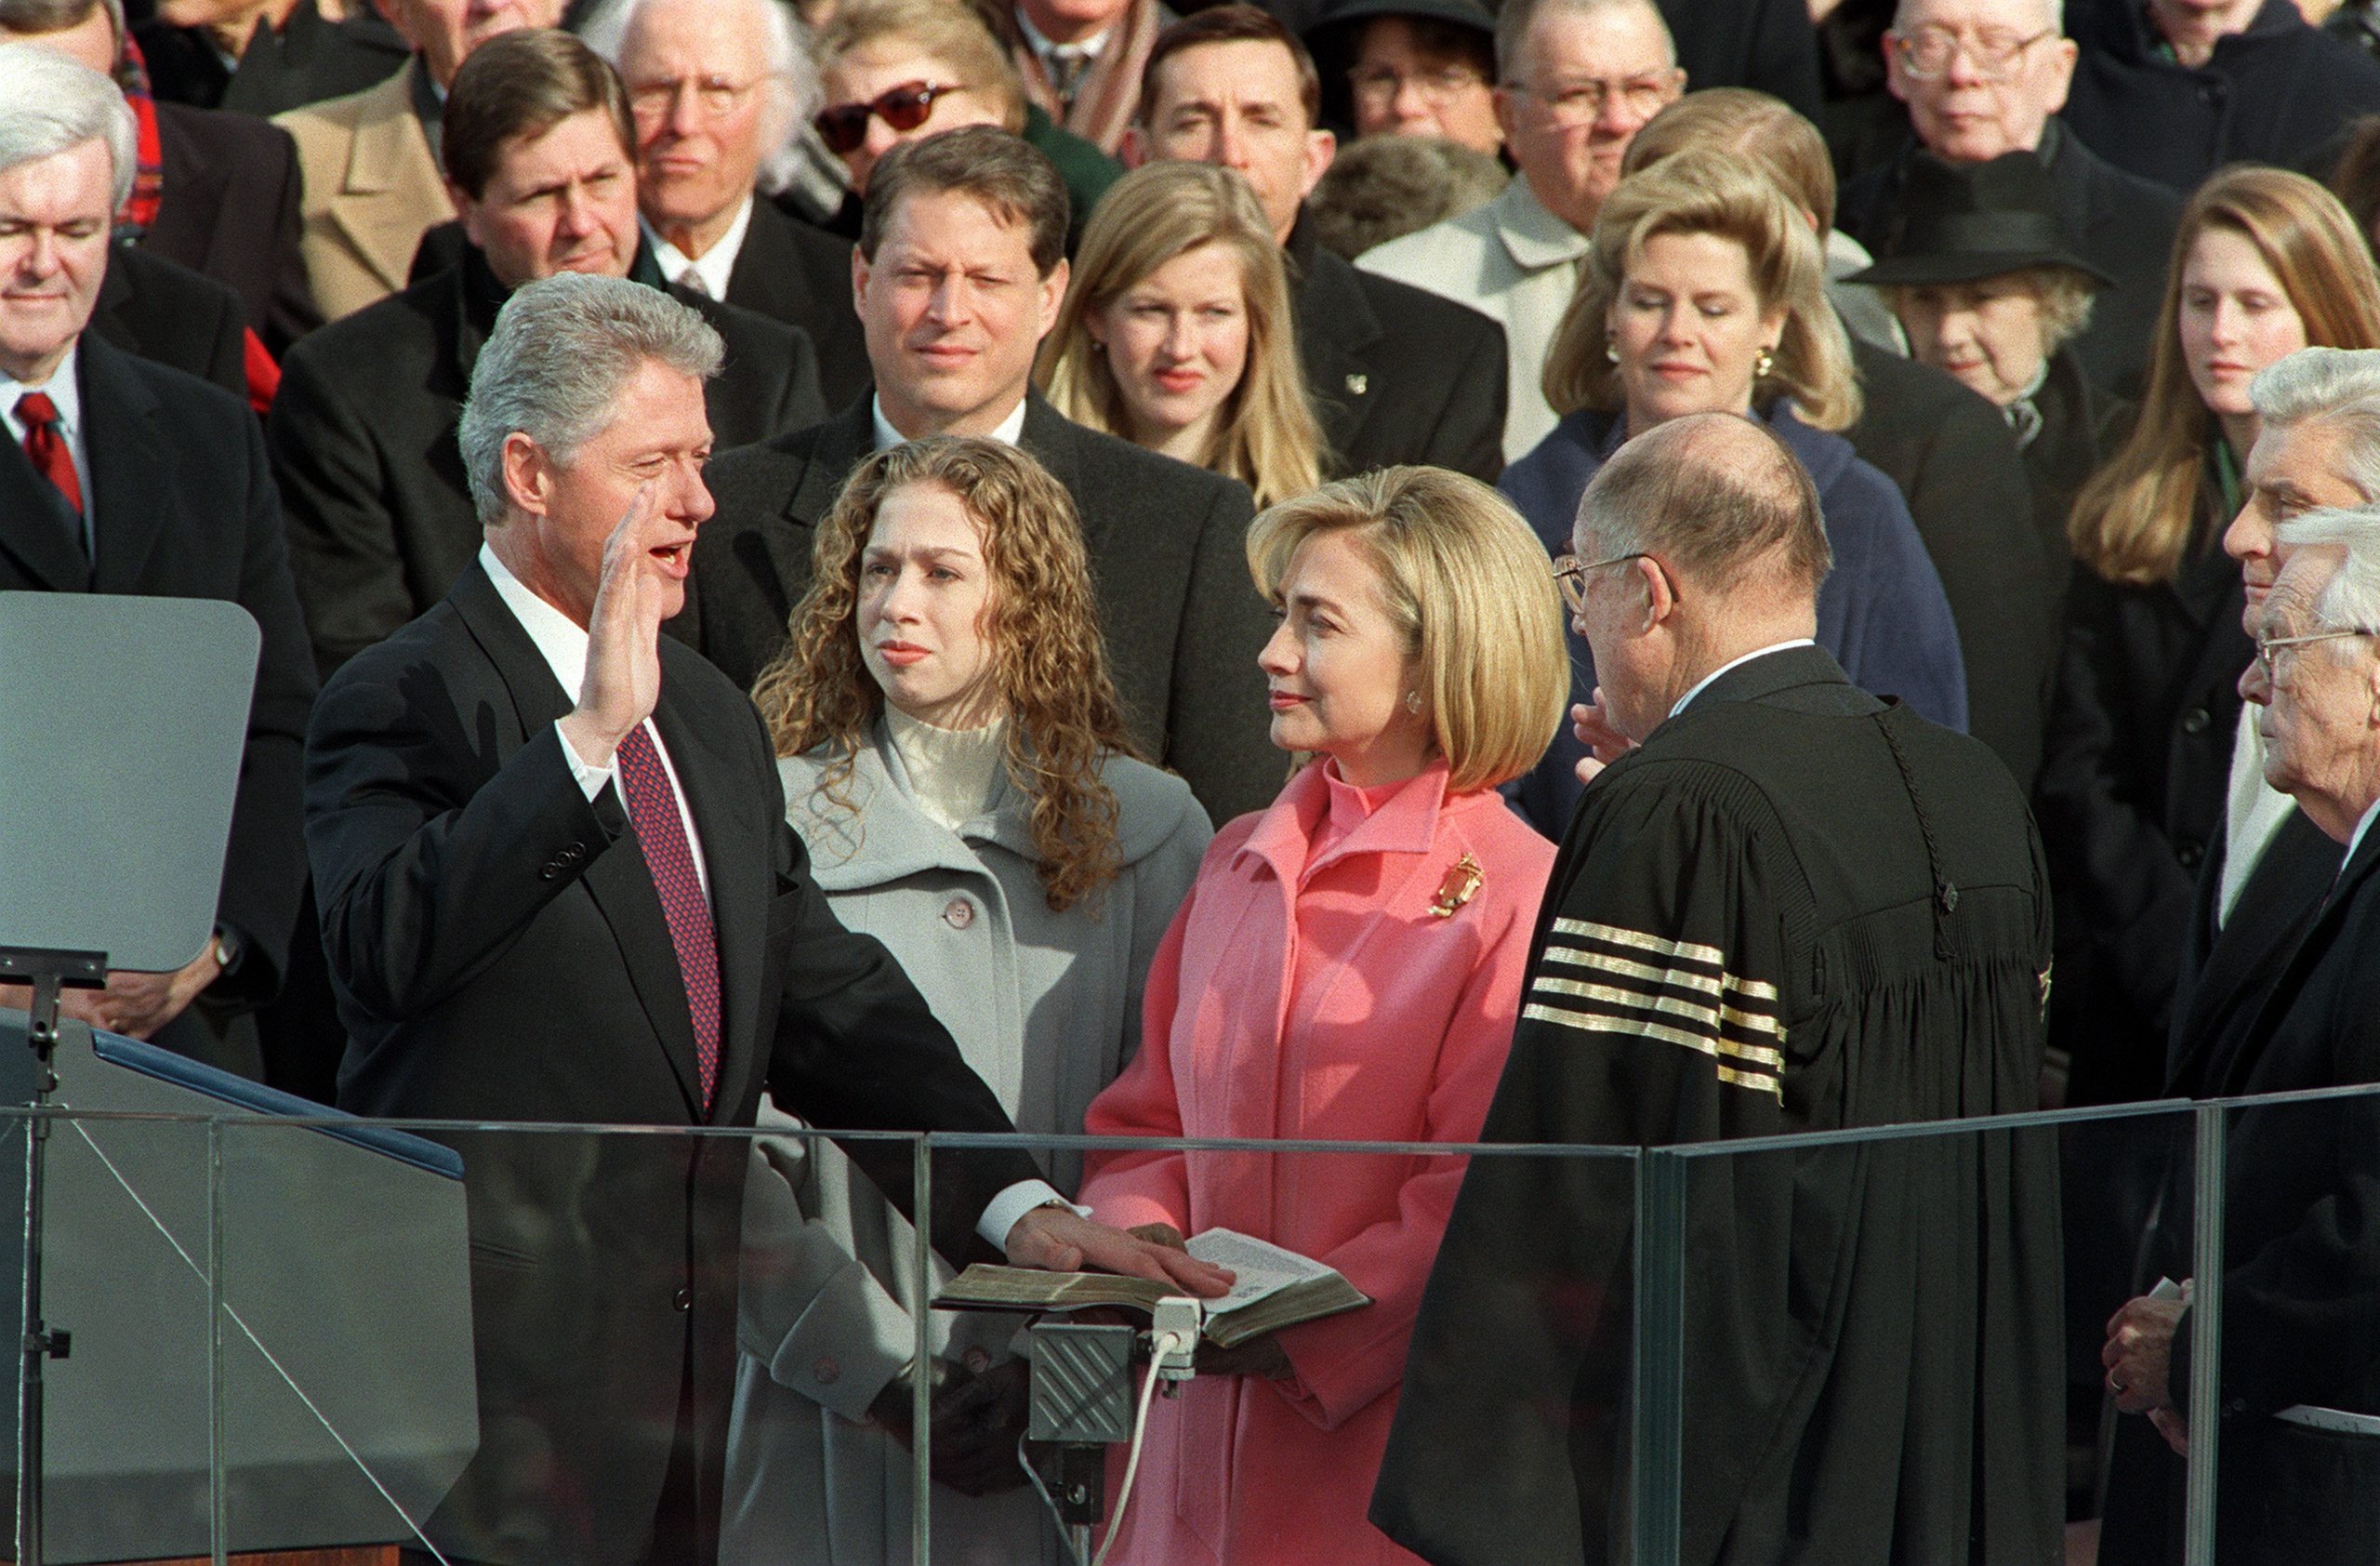 President Bill Clinton is sworn in Jan. 20, 1997 on Capitol Hill in Washington, D.C., for his second term as president of the United States by US Supreme Court Chief Justice William Rehnquist as First Lady Hillary Rodham Clinton and daughter Chelsea look on.